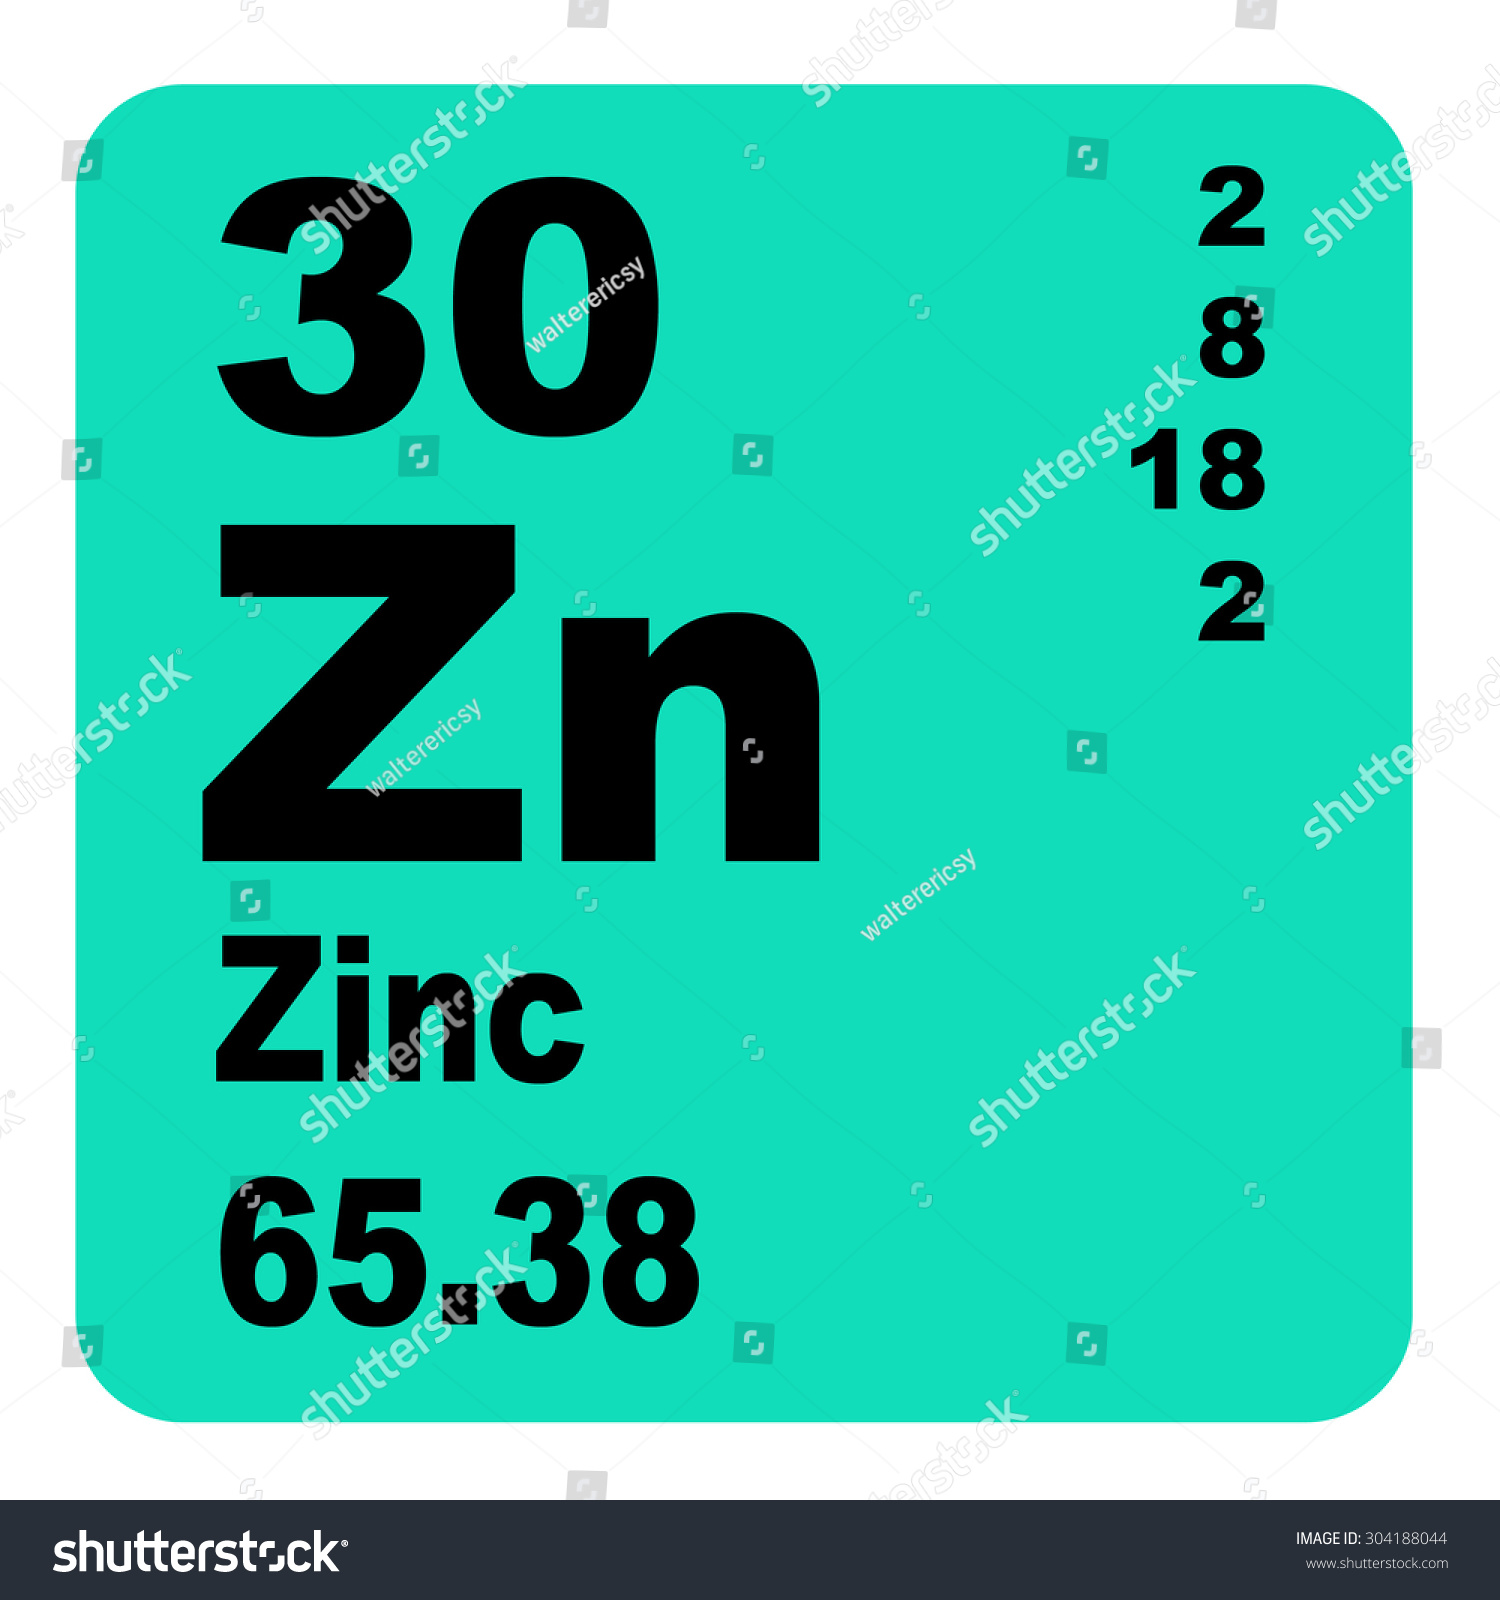 Zinc periodic table elements stock illustration 304188044 shutterstock zinc periodic table of elements urtaz Images